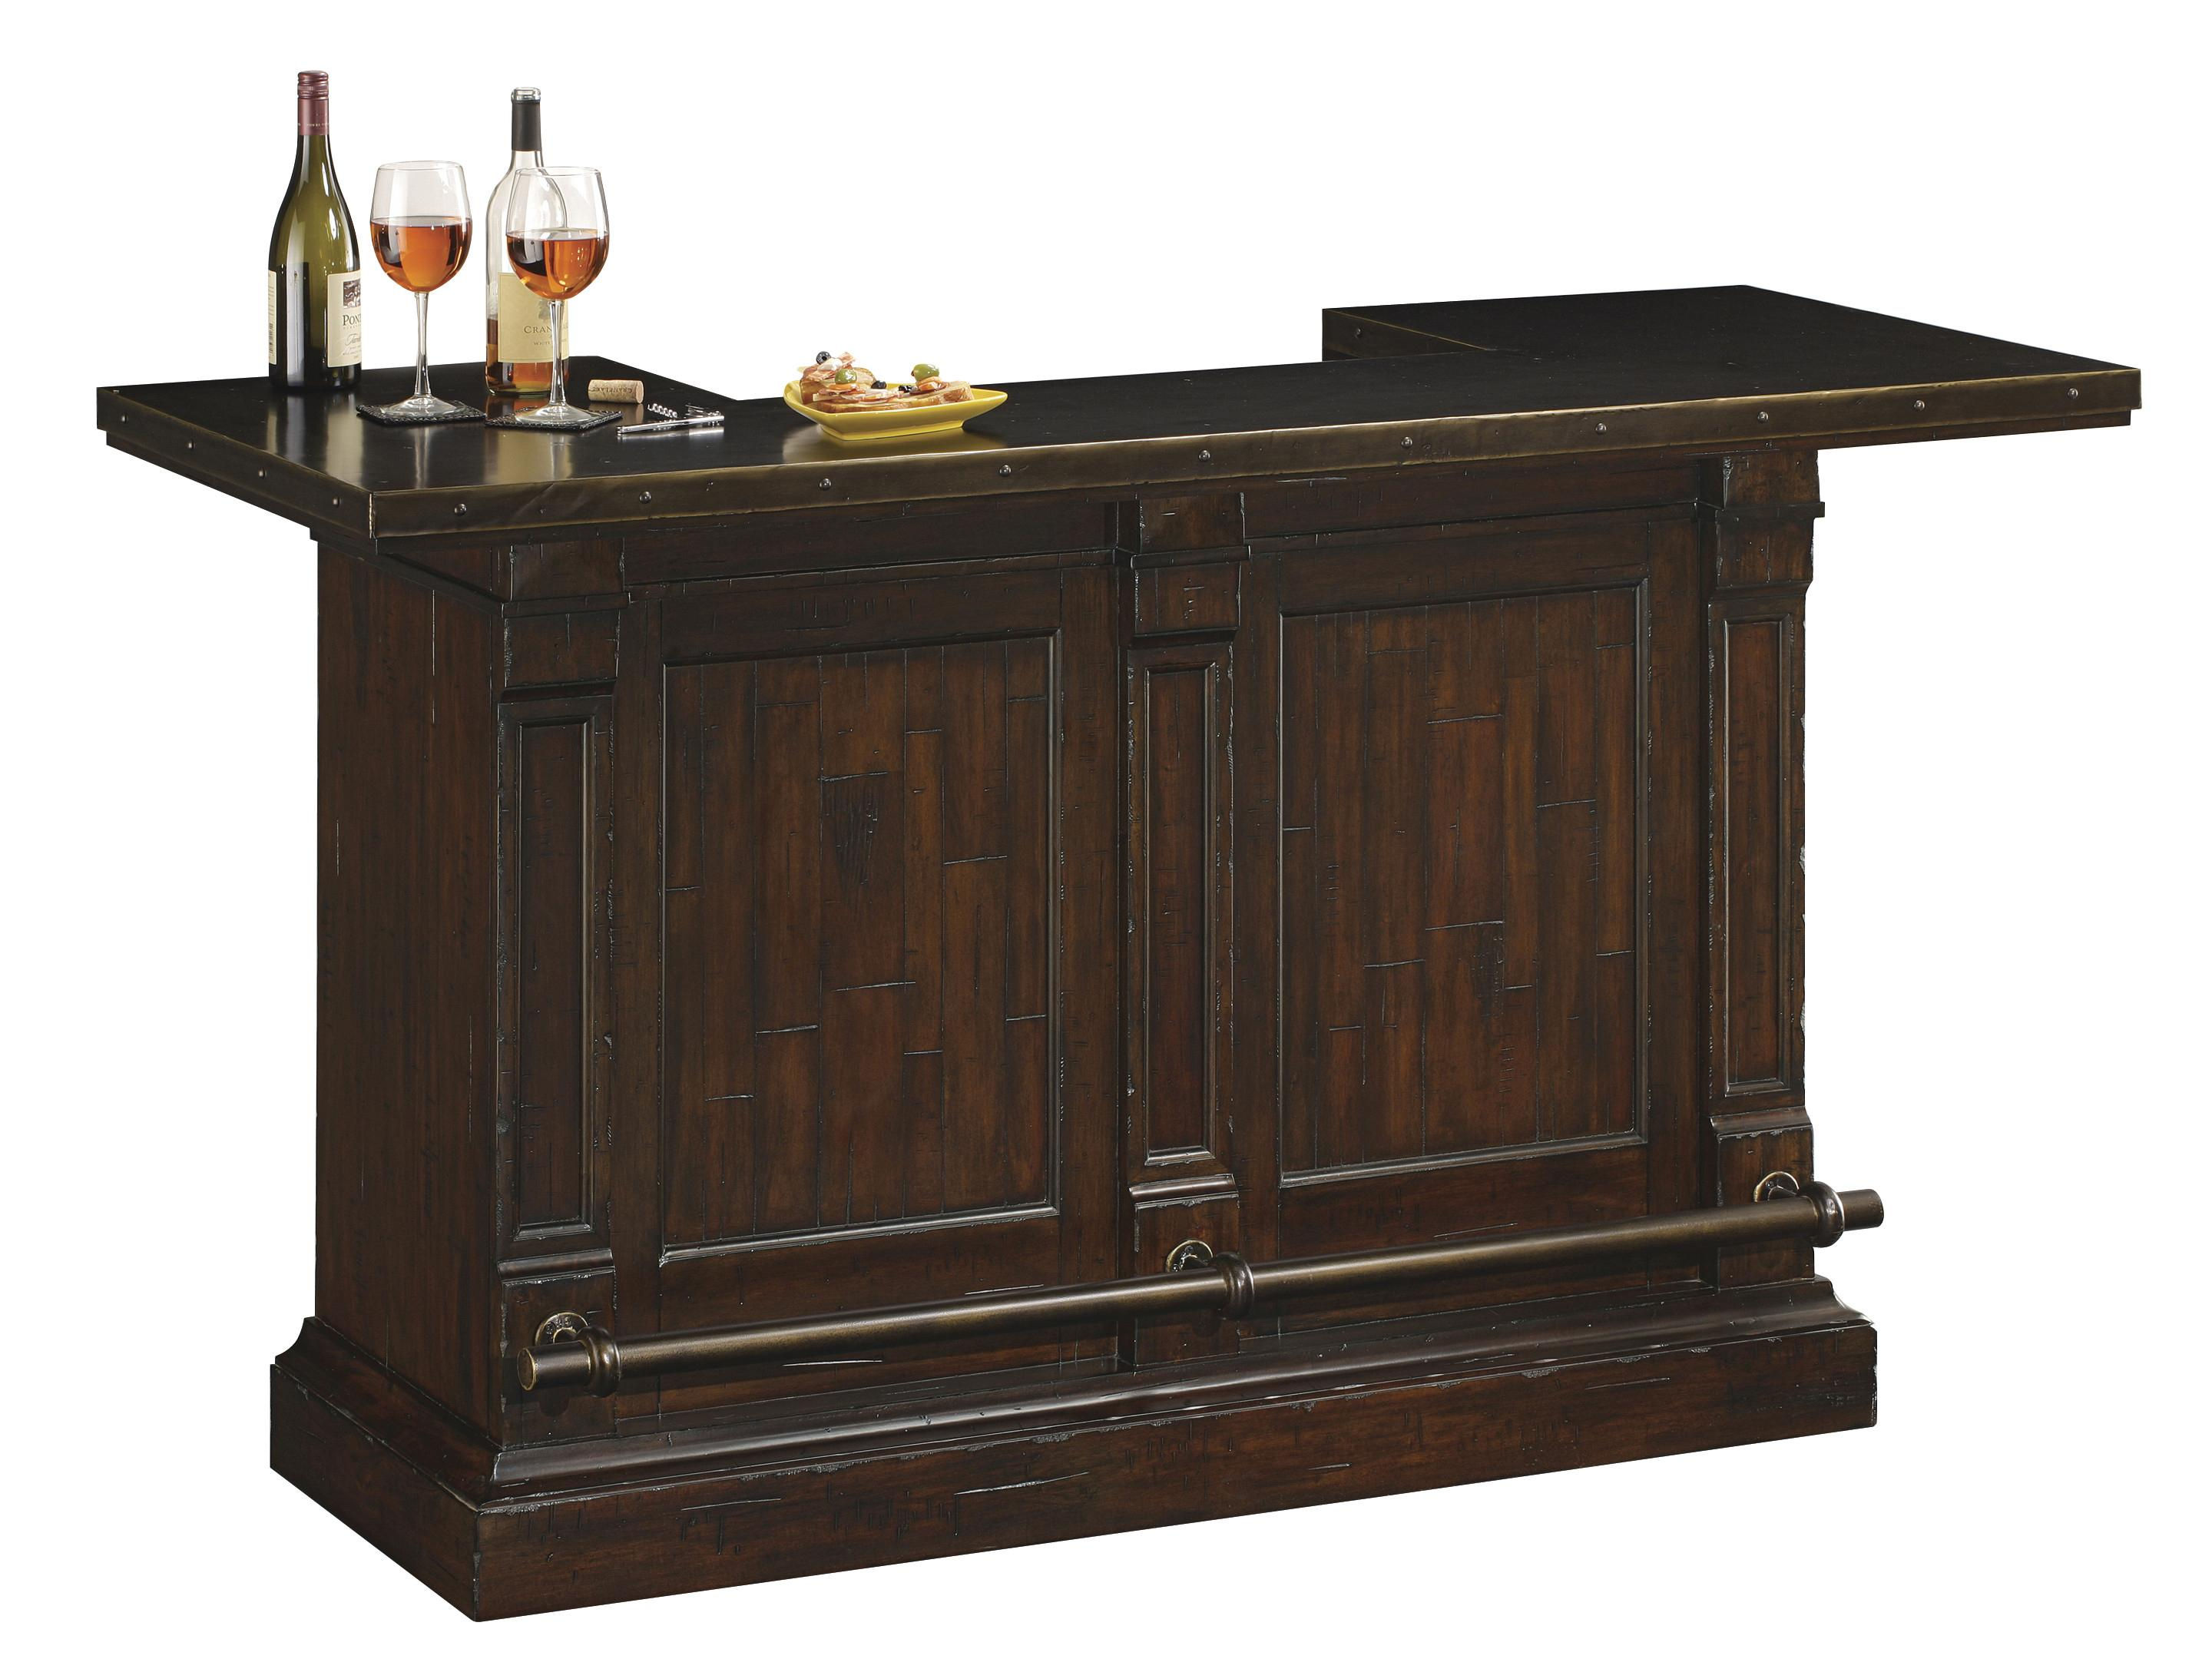 Howard miller wine bar furnishings 693 030 harbor Wine bar furniture